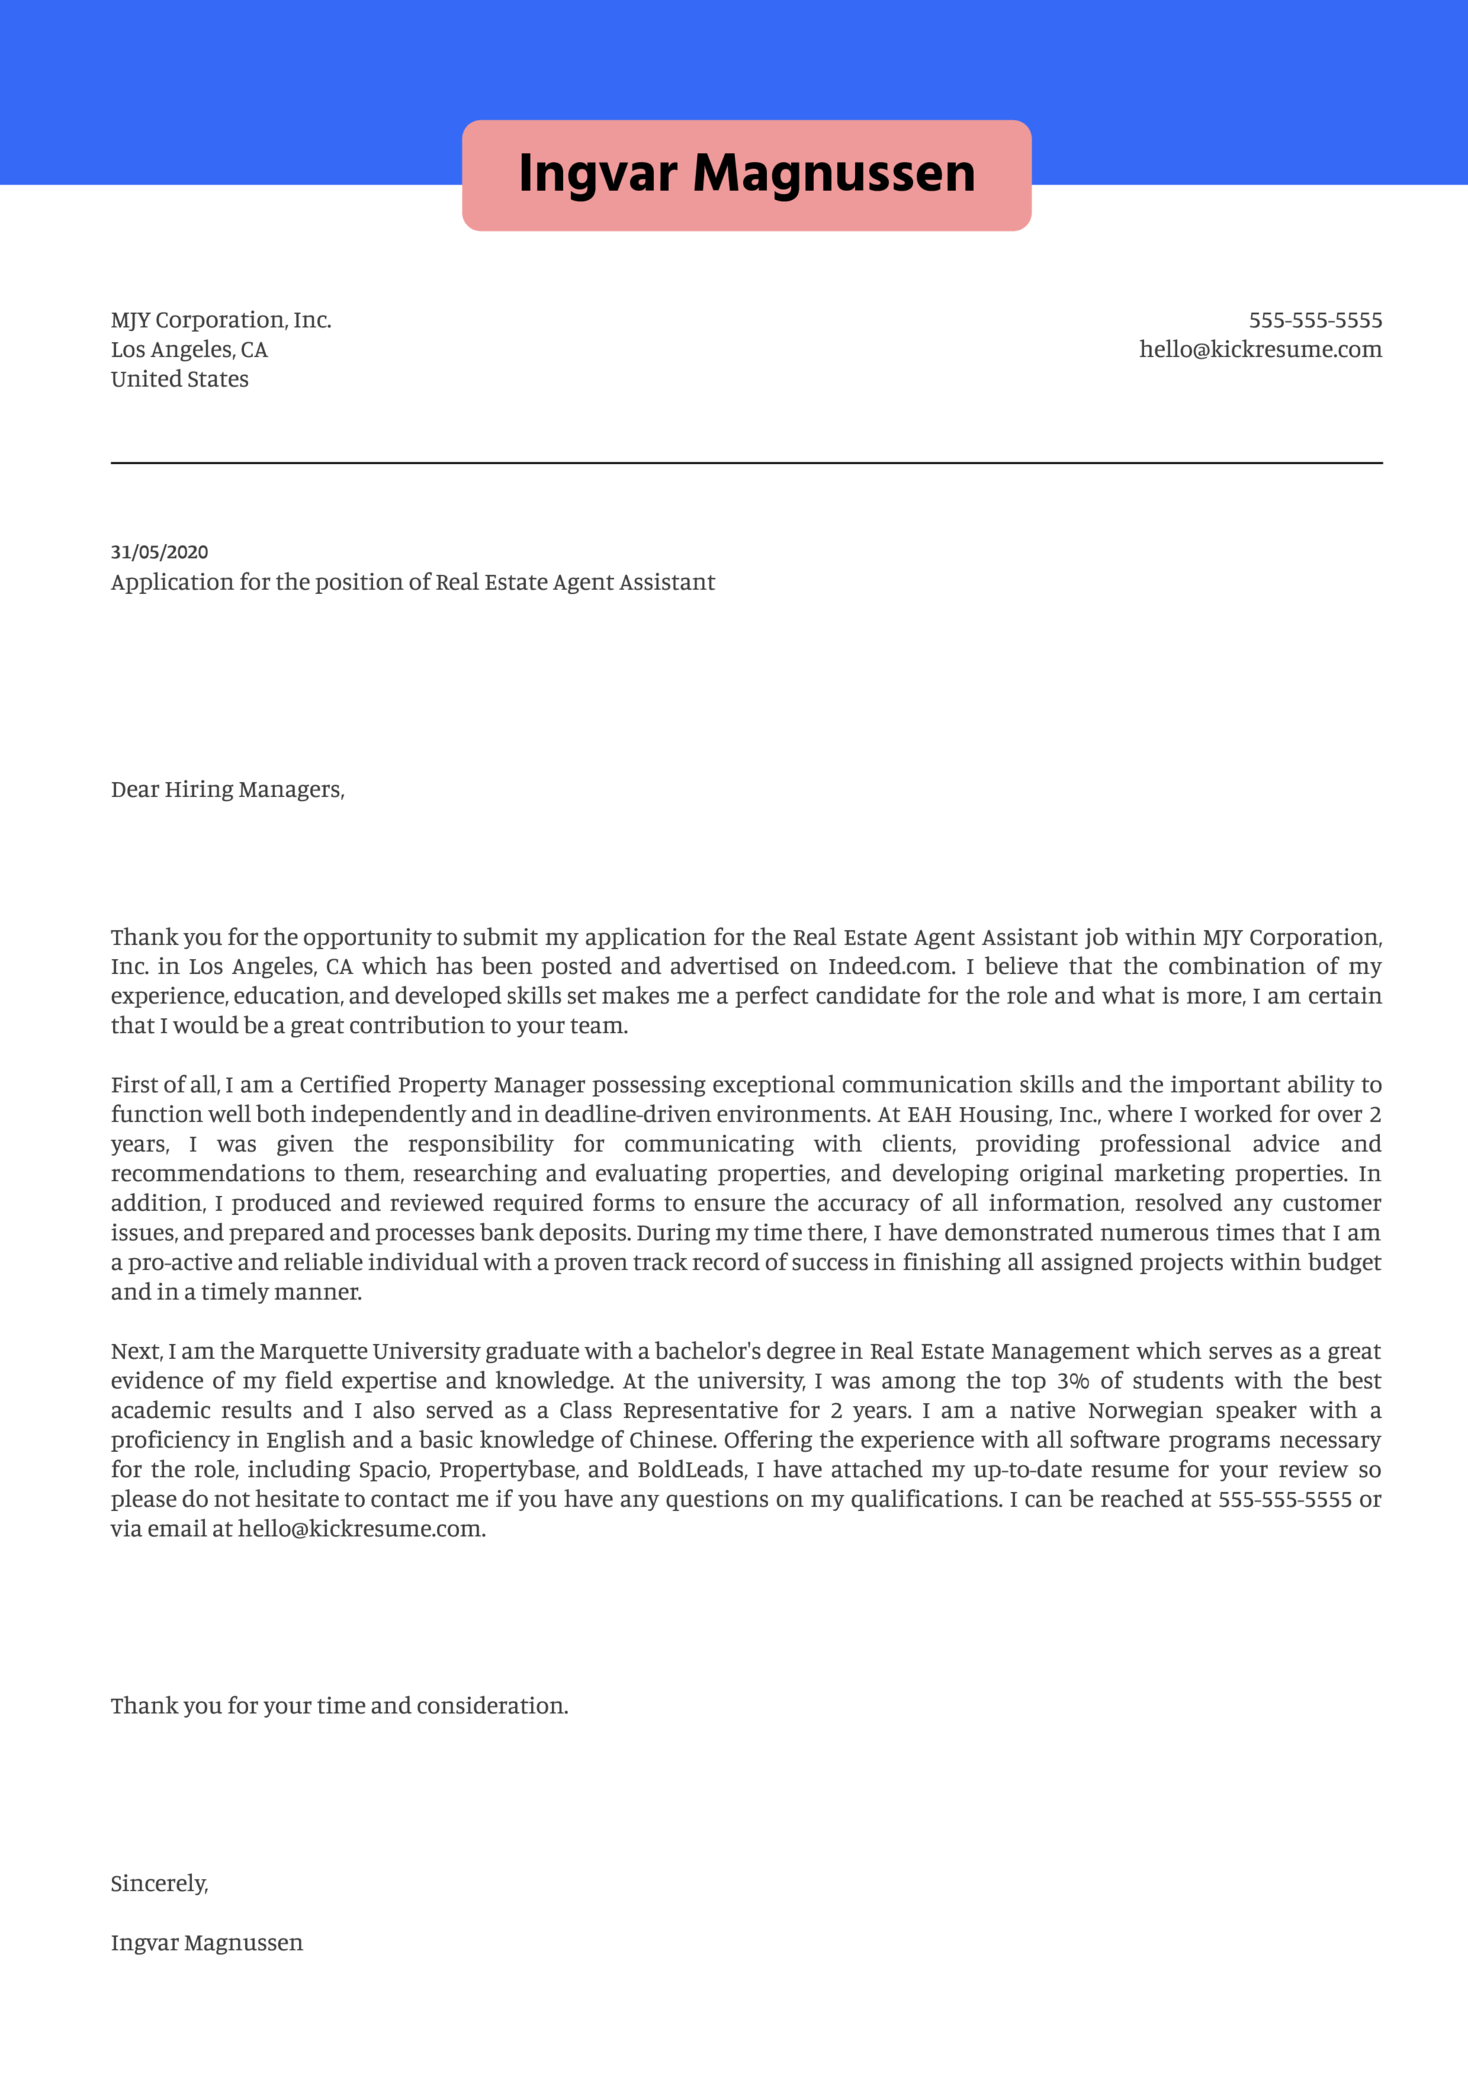 Real Estate Agent Assistant Cover Letter Example